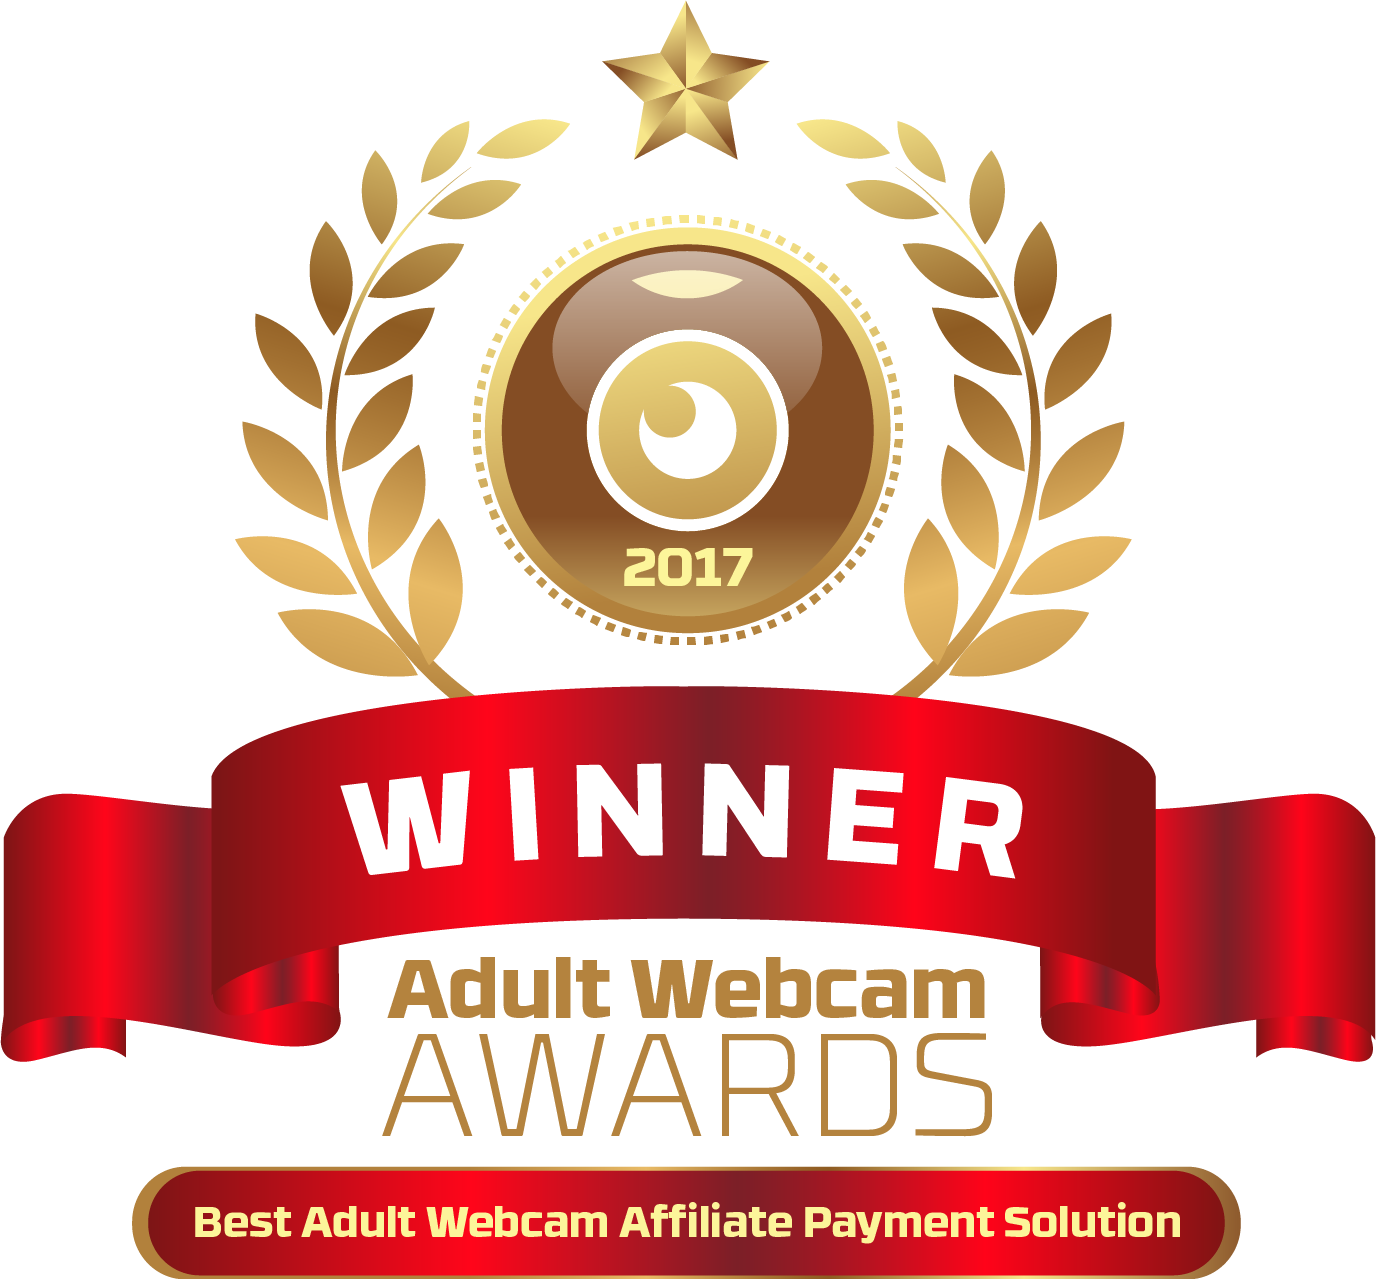 Best Adult Webcam Affiliate Payment Solutions 2